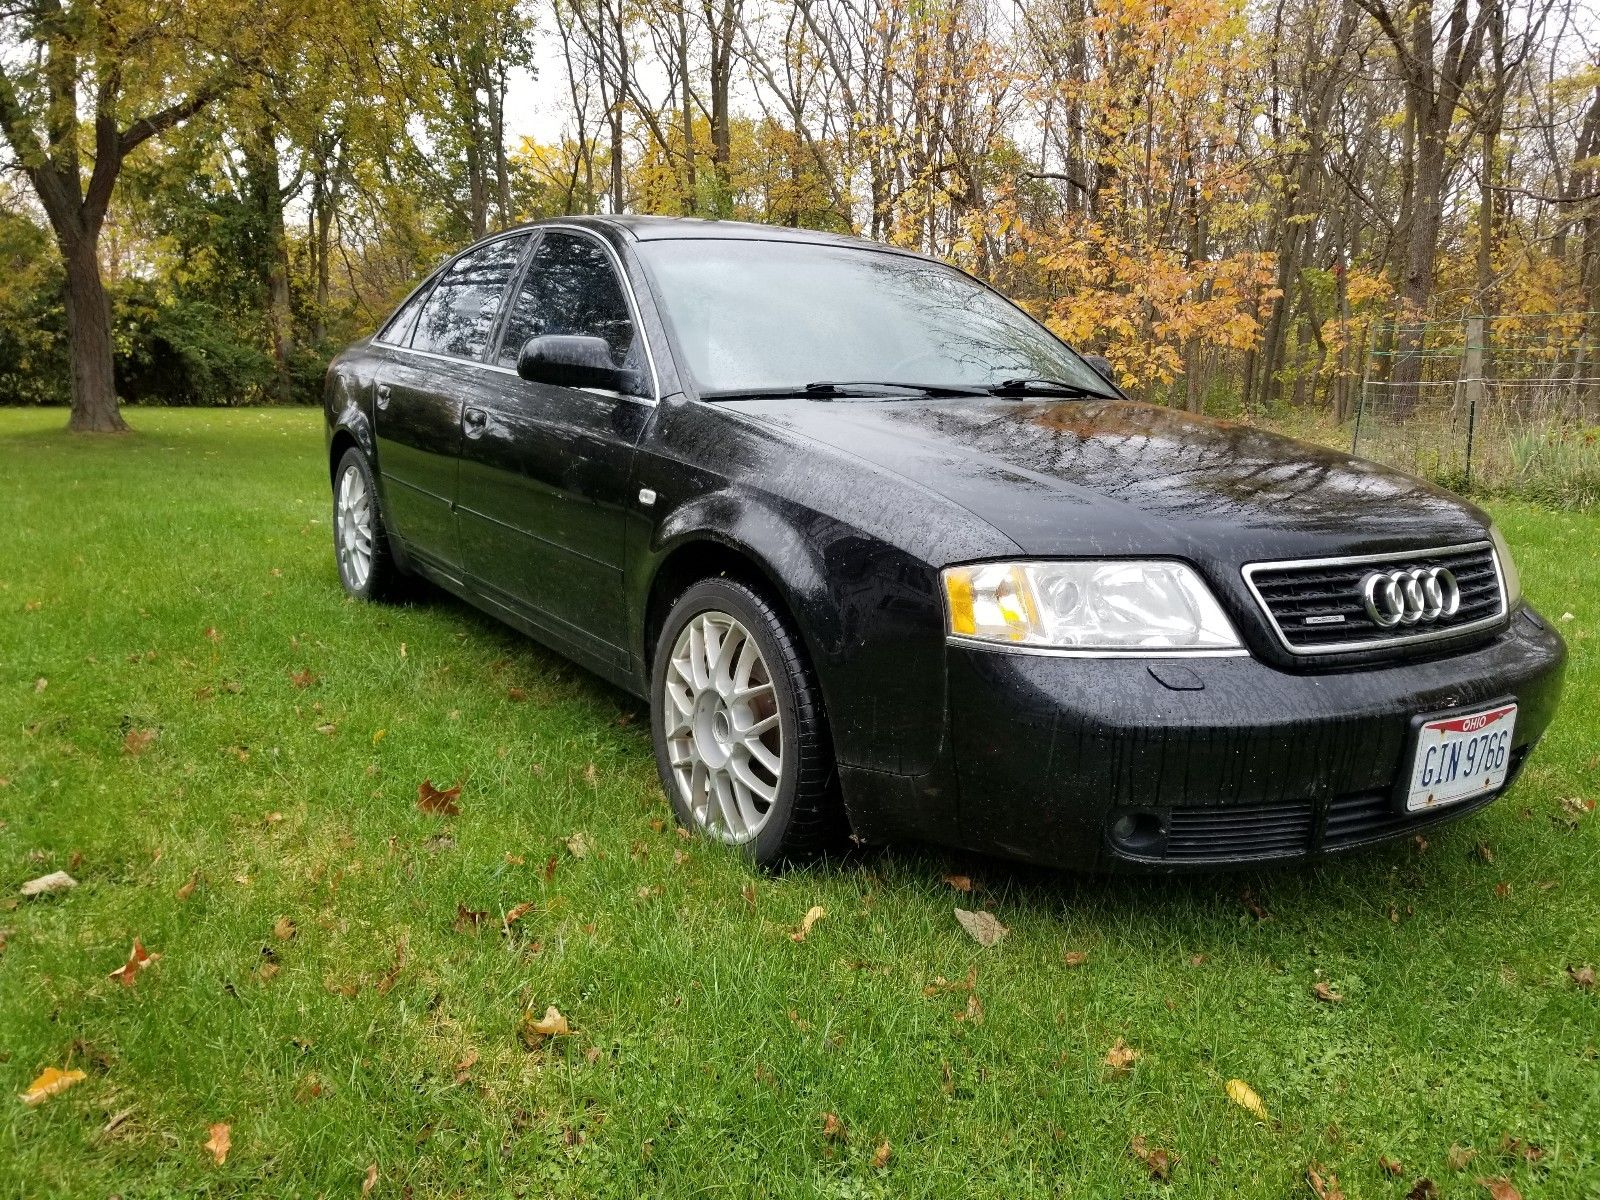 Amazing Audi A Audi A T TwinTurbo Quattro Runs And - 2000 audi a6